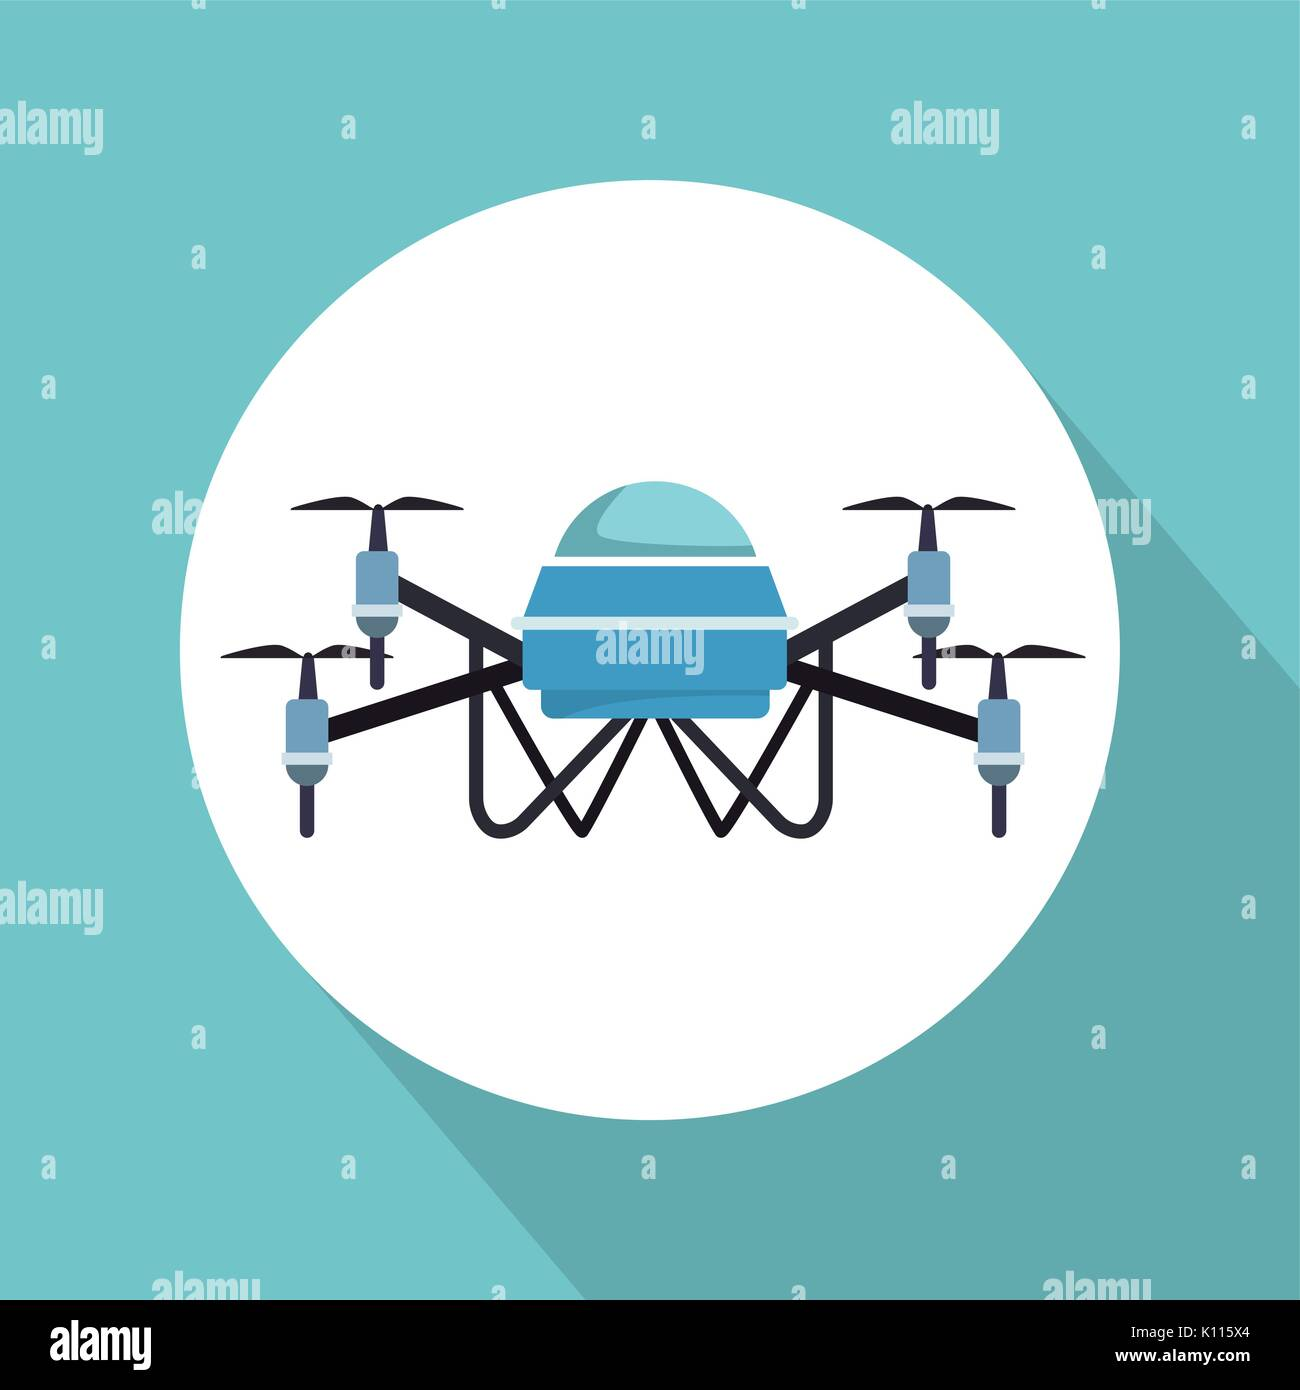 color background with circular frame robot drone with four airscrew - Stock Image